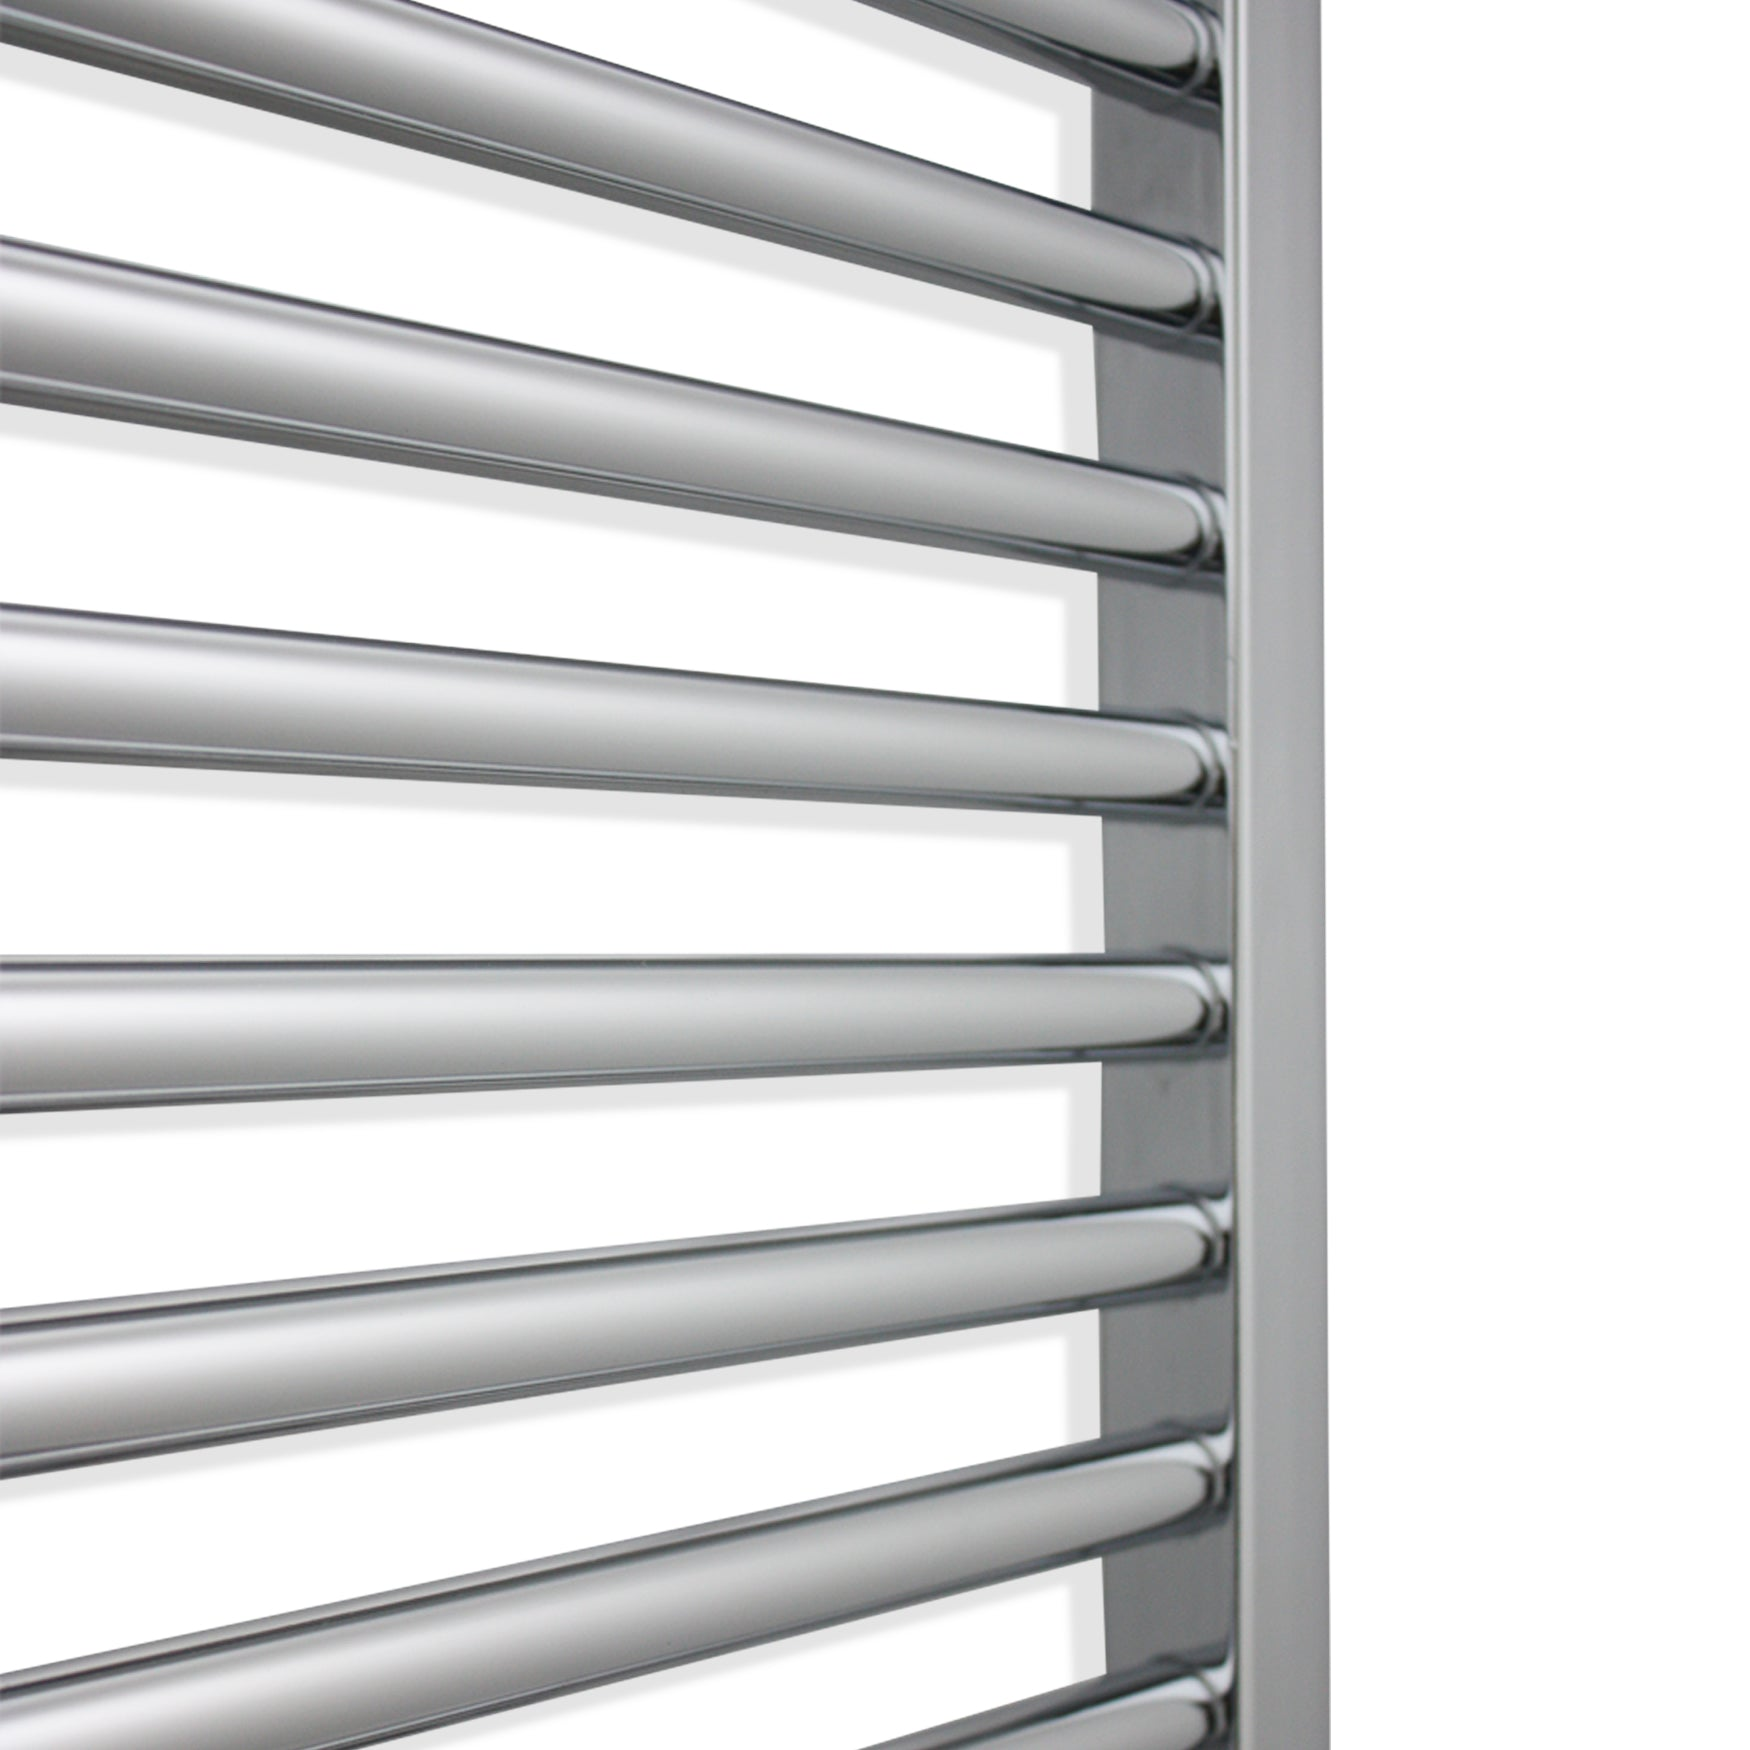 450mm Wide 1100mm High Flat Or Curved Chrome Pre-Filled Electric Heated Towel Rail Radiator HTR